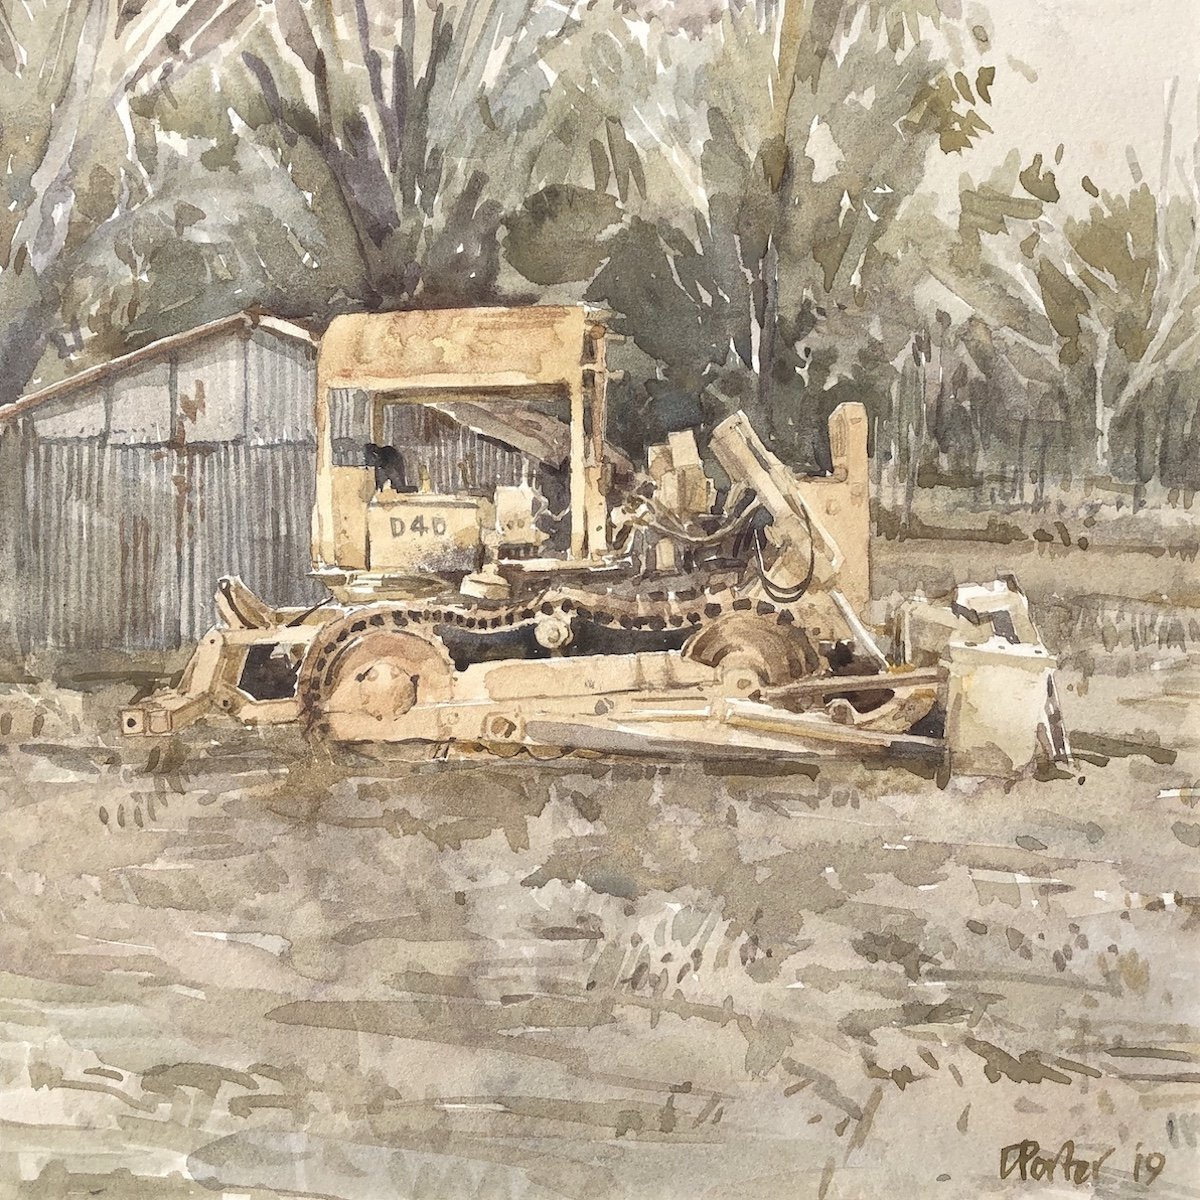 Watercolour painting by Christine Porter showing a yellow D4D tractor in front of a corrugated iron shed and beyond that, bush.